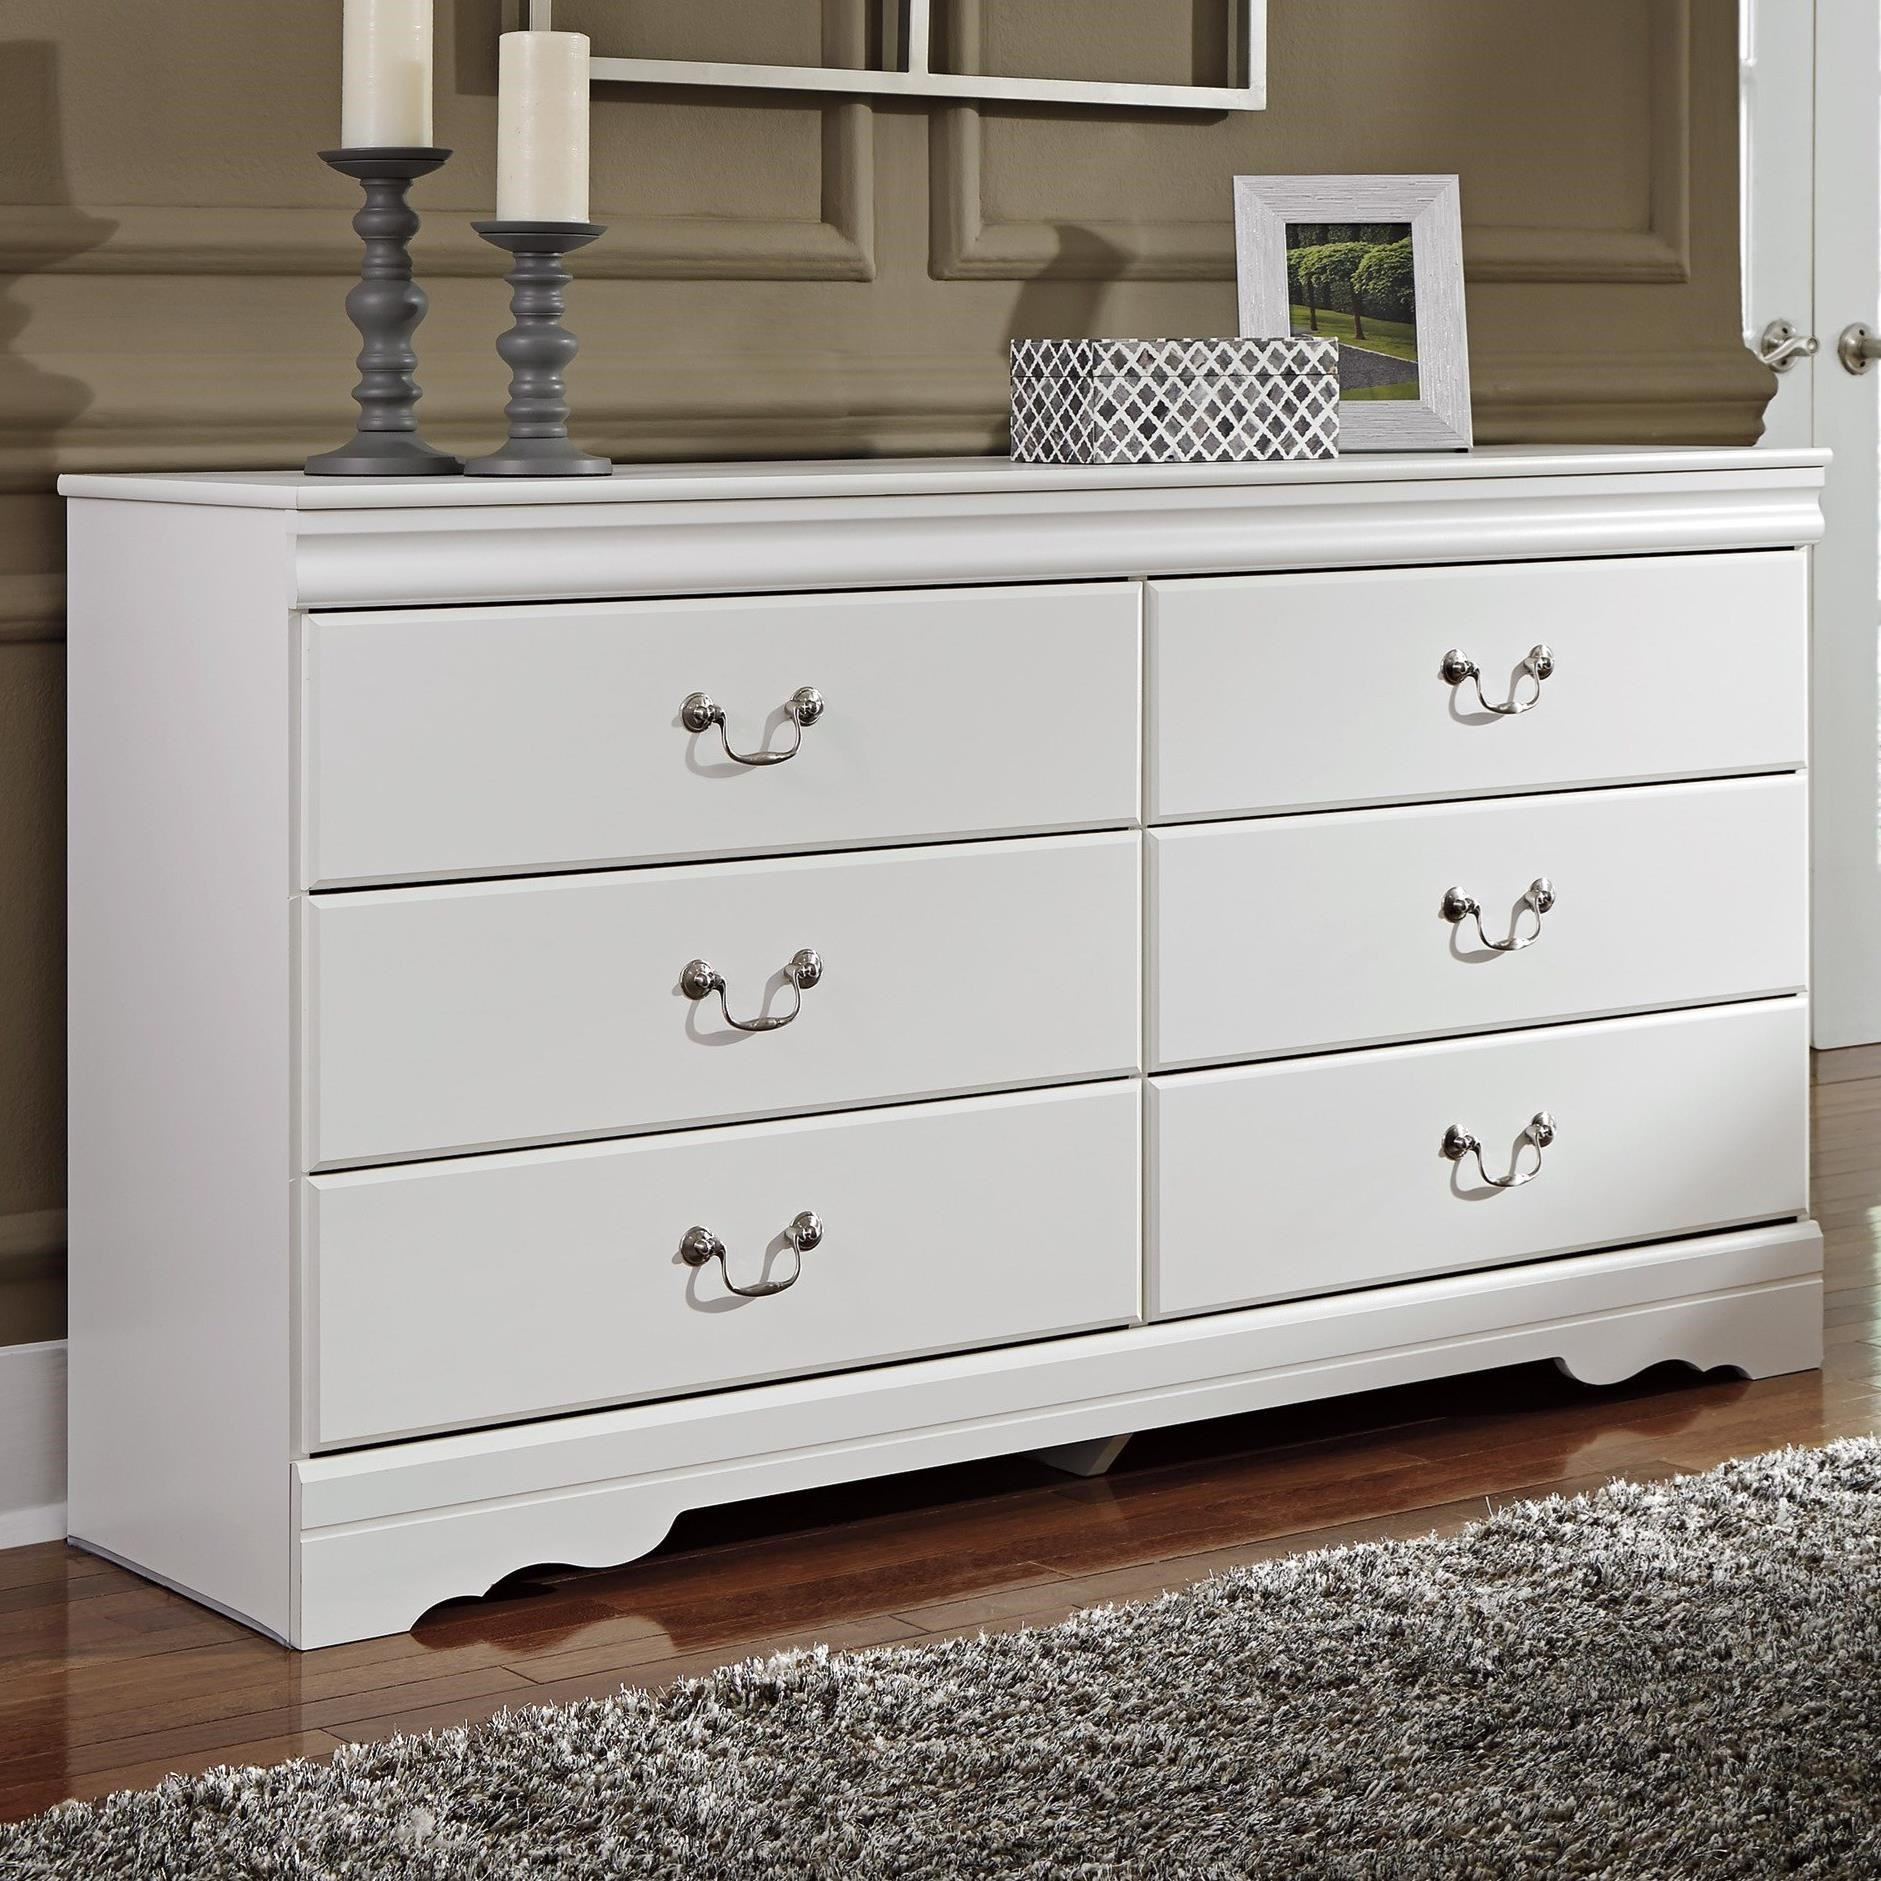 Anarasia Dresser by Signature Design by Ashley at Zak's Warehouse Clearance Center